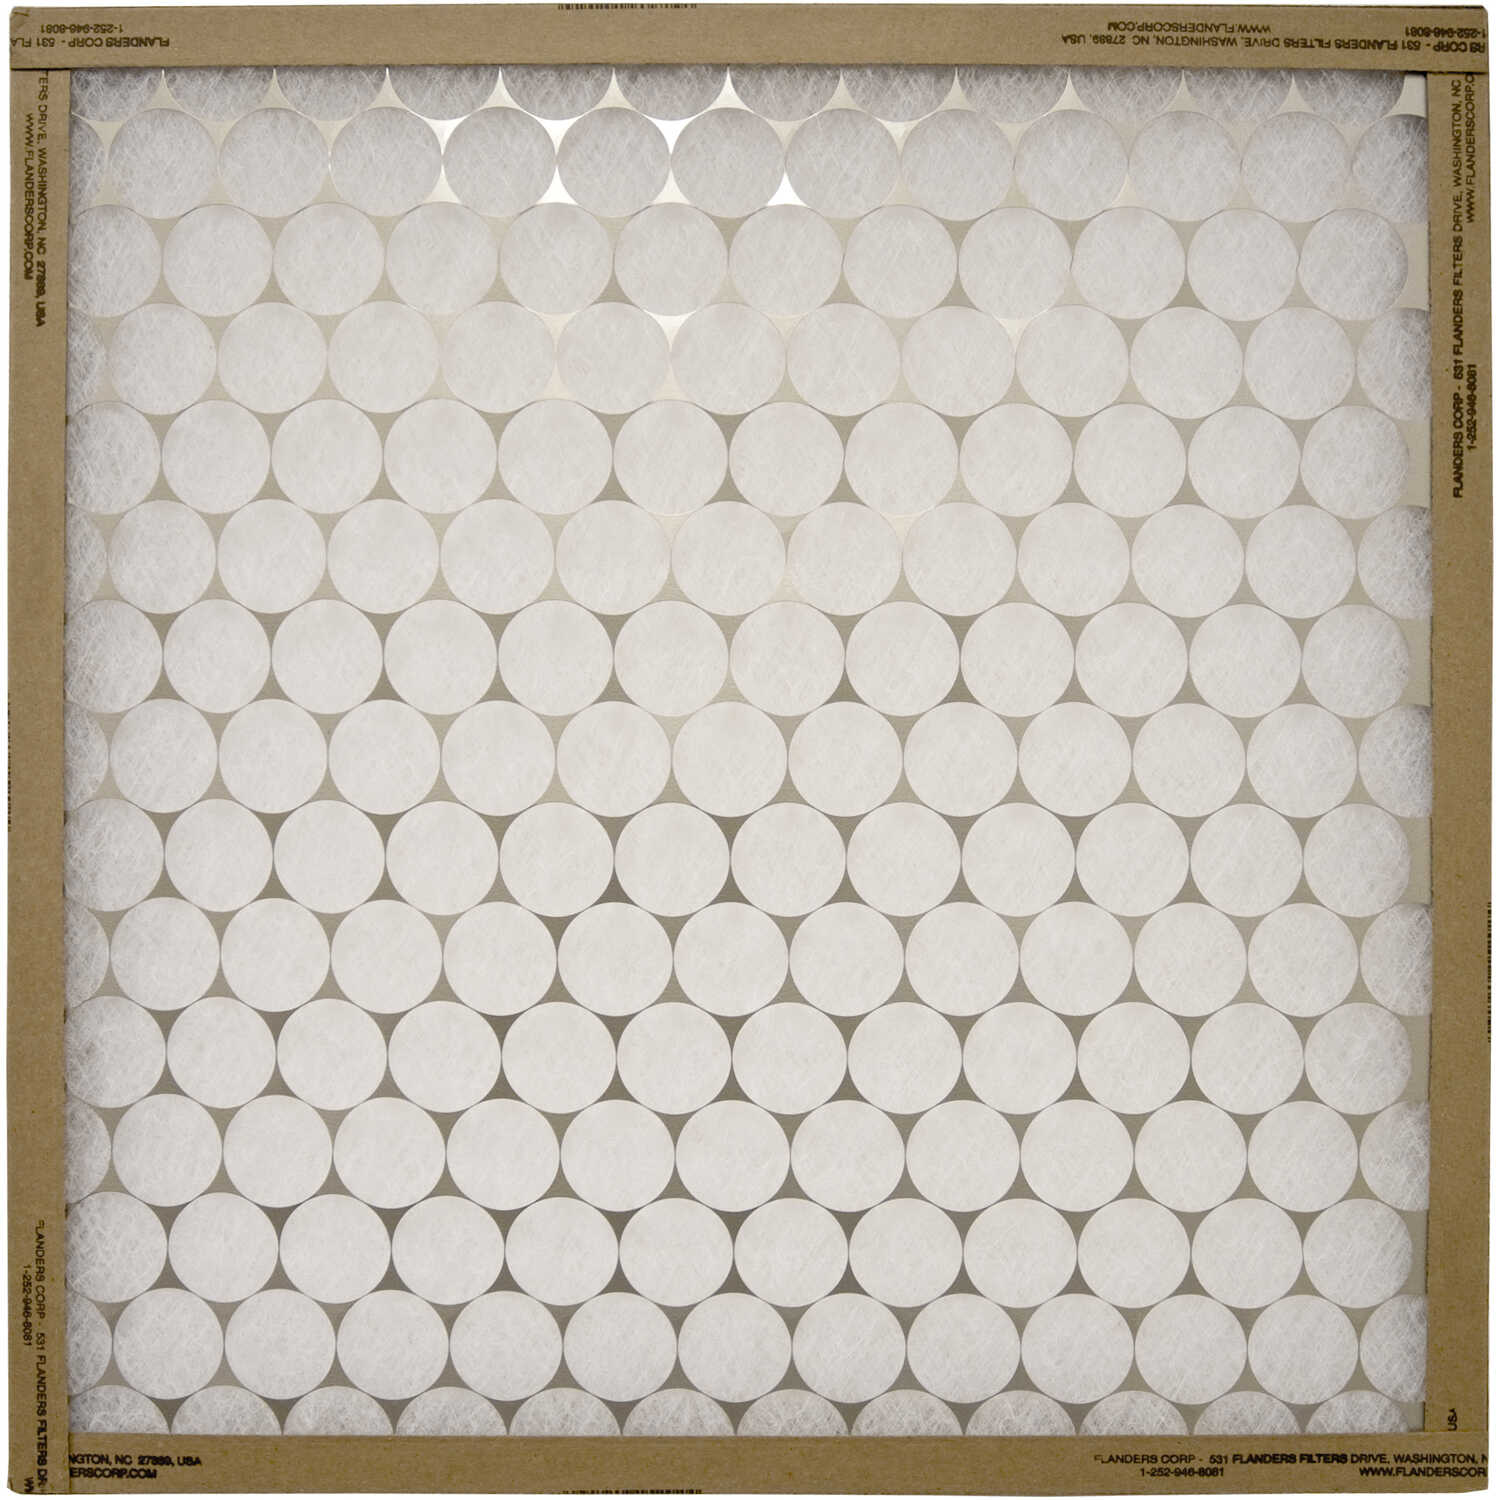 AAF Flanders  21-1/2 in. H x 21-1/2 in. W x 1 in. D Fiberglass  Air Filter